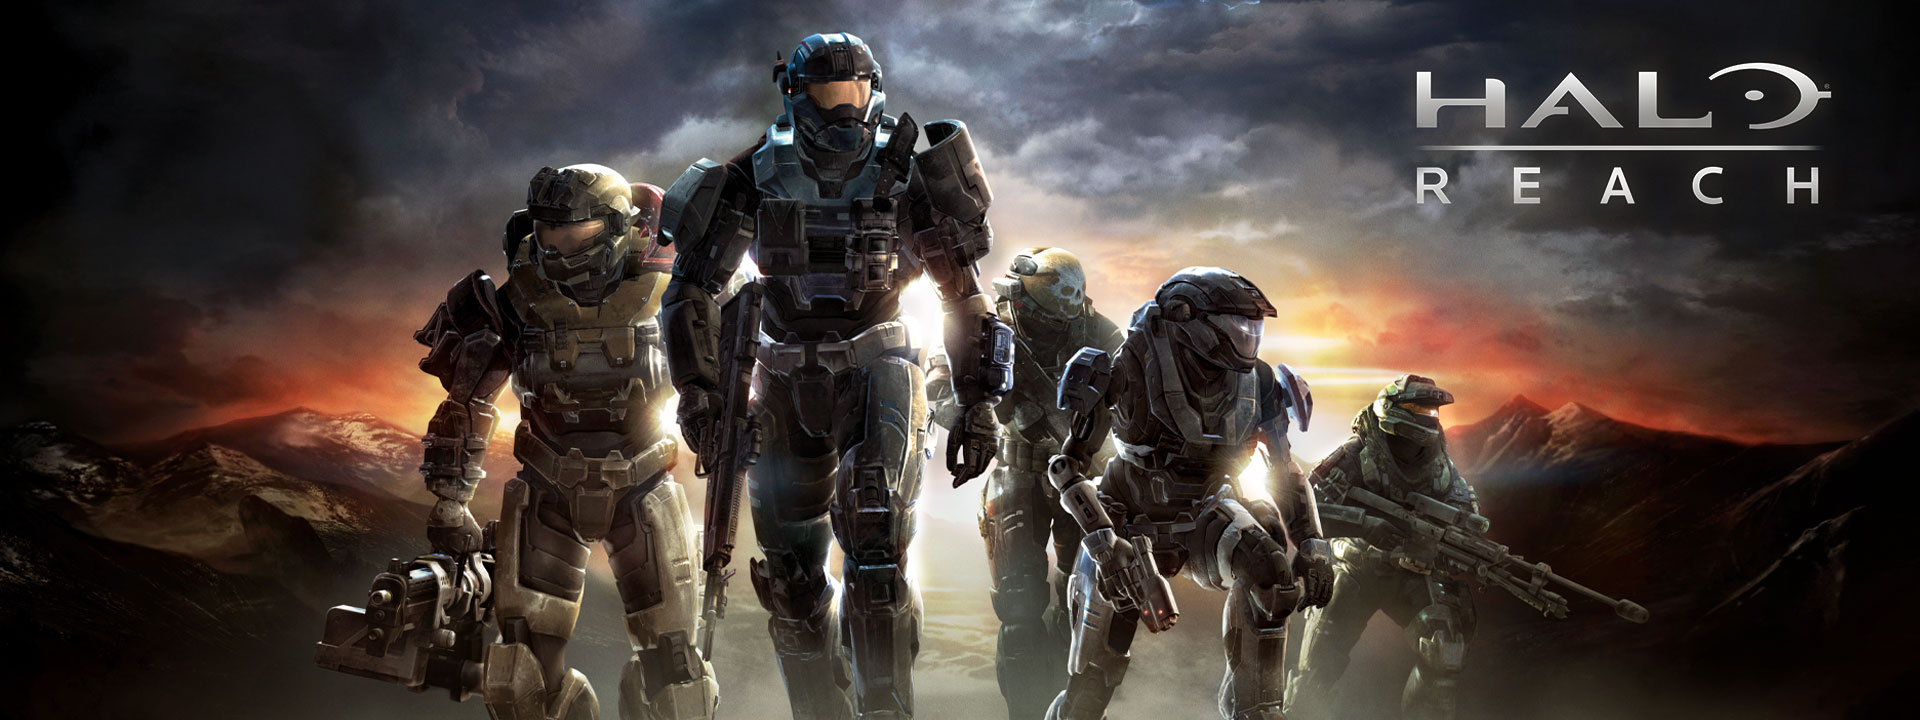 Halo Reach, a group of Halo soldiers climb a misty hill with sun breaking through heavy clouds behind them